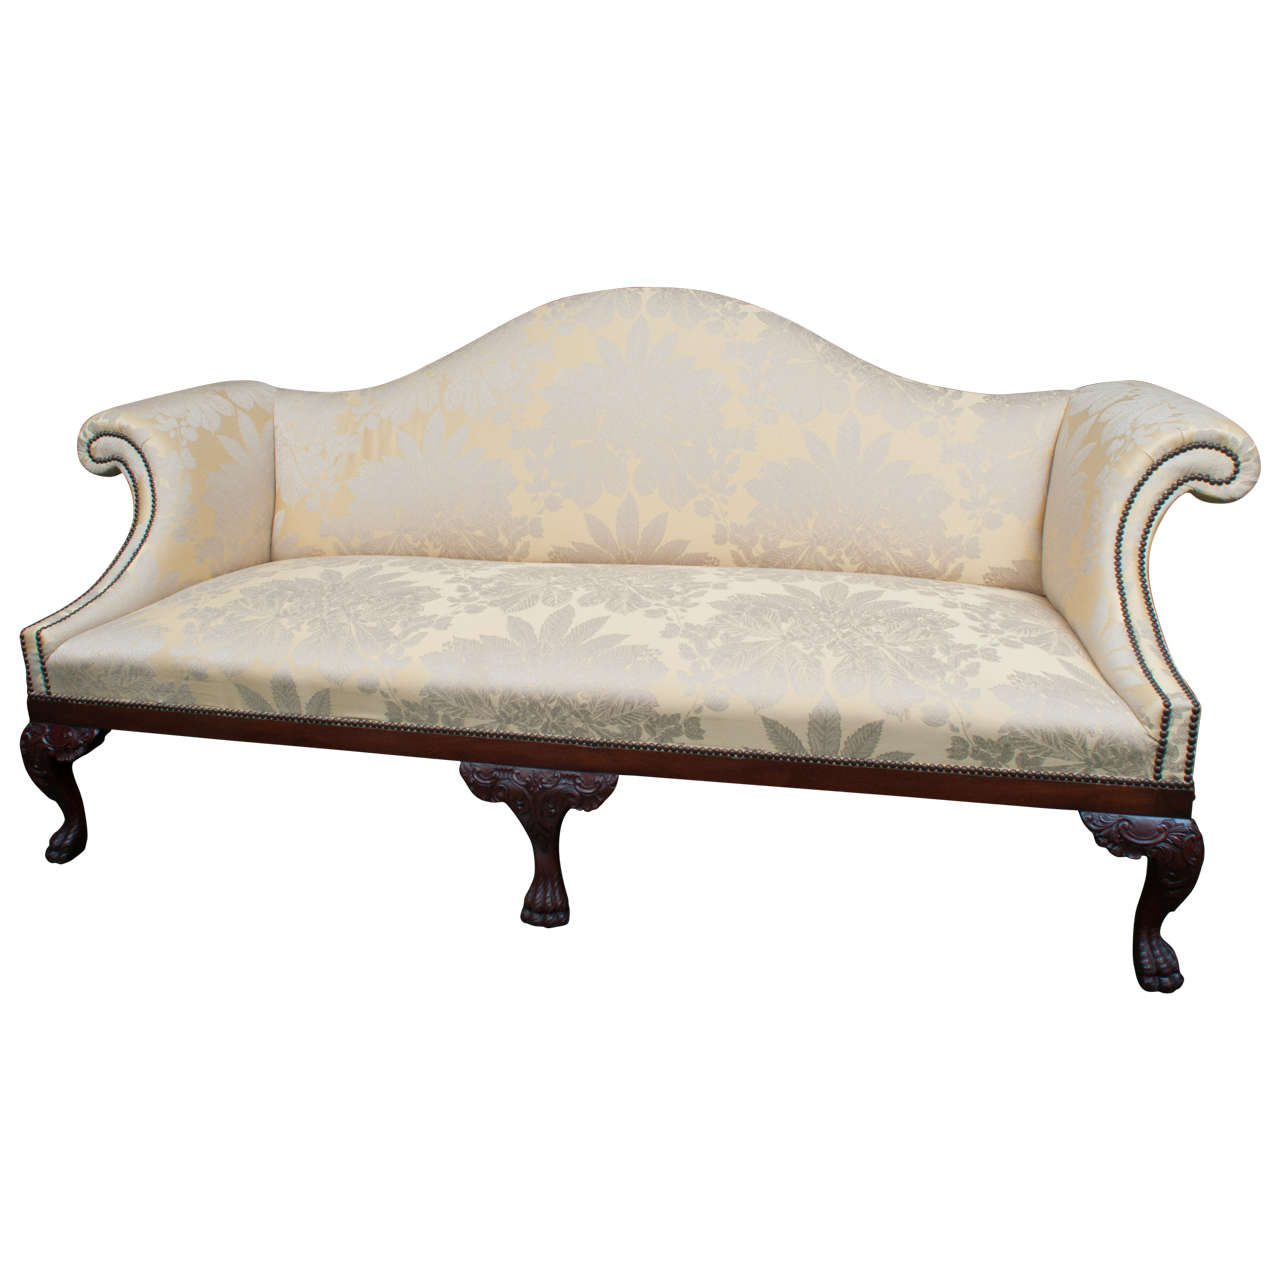 Large Georgian Style Chippendale Camelback Sofa England Or Ireland Circa 1890 For